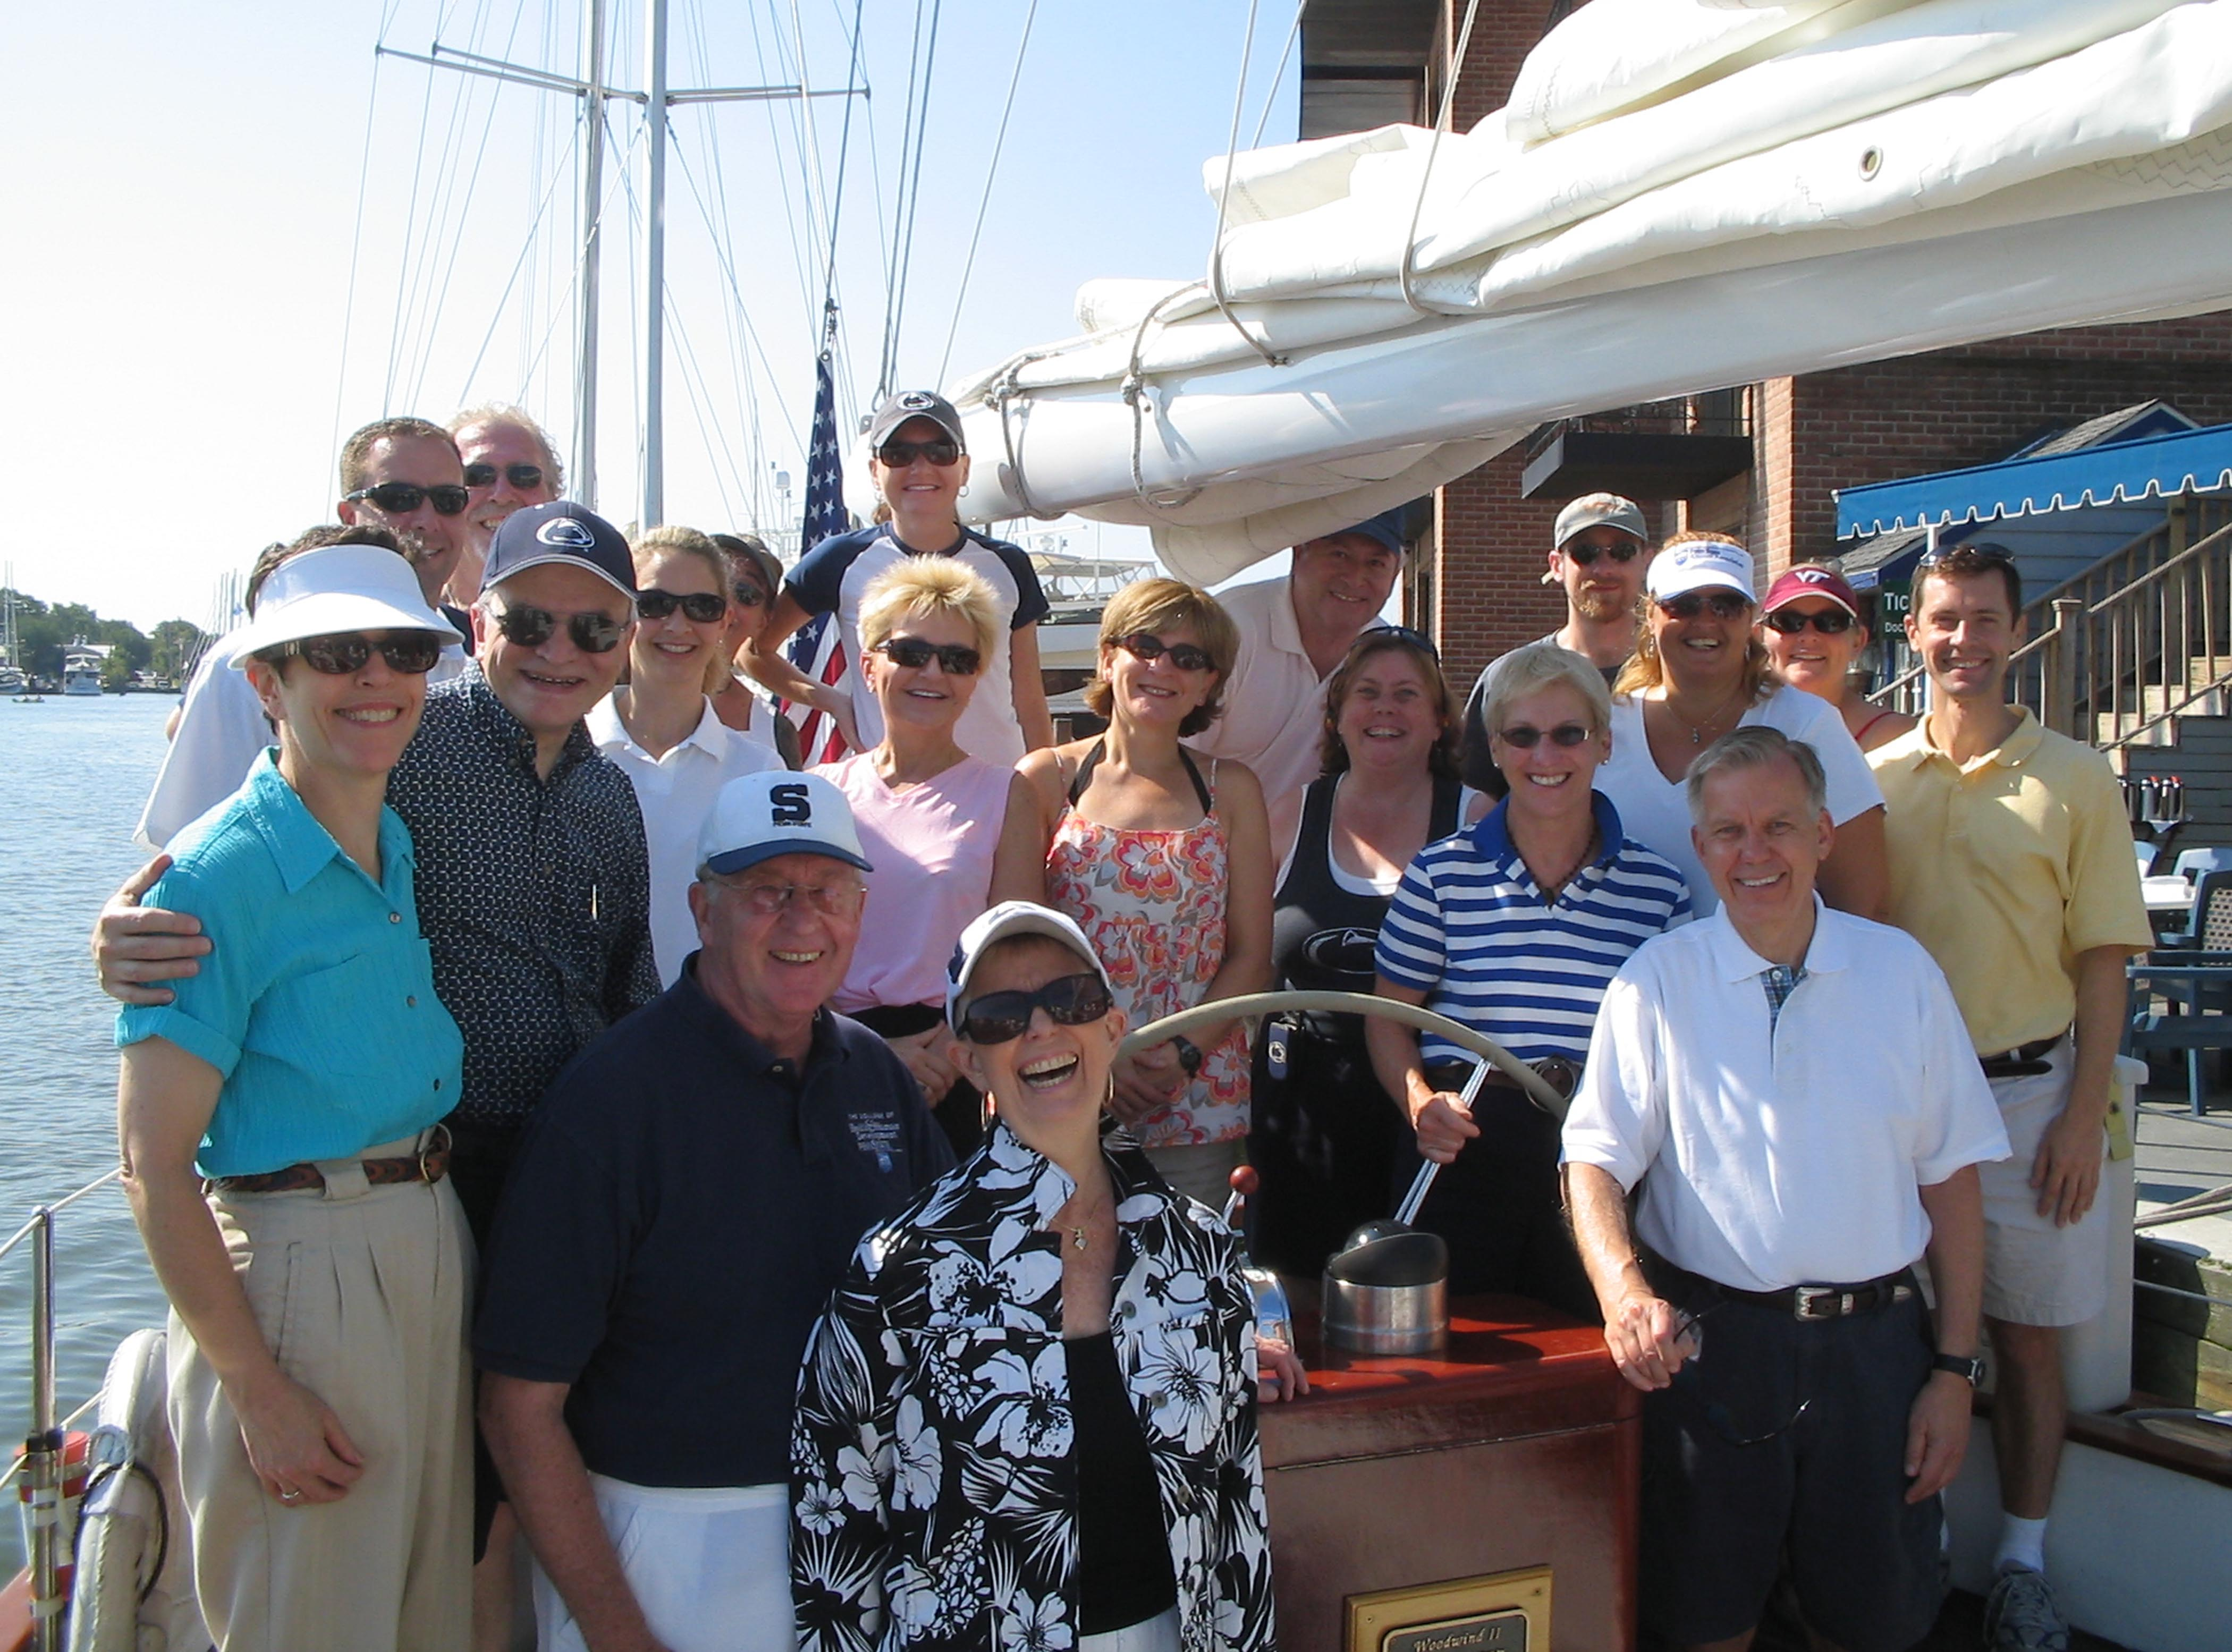 Group charter party on the Chesapeake Bay!